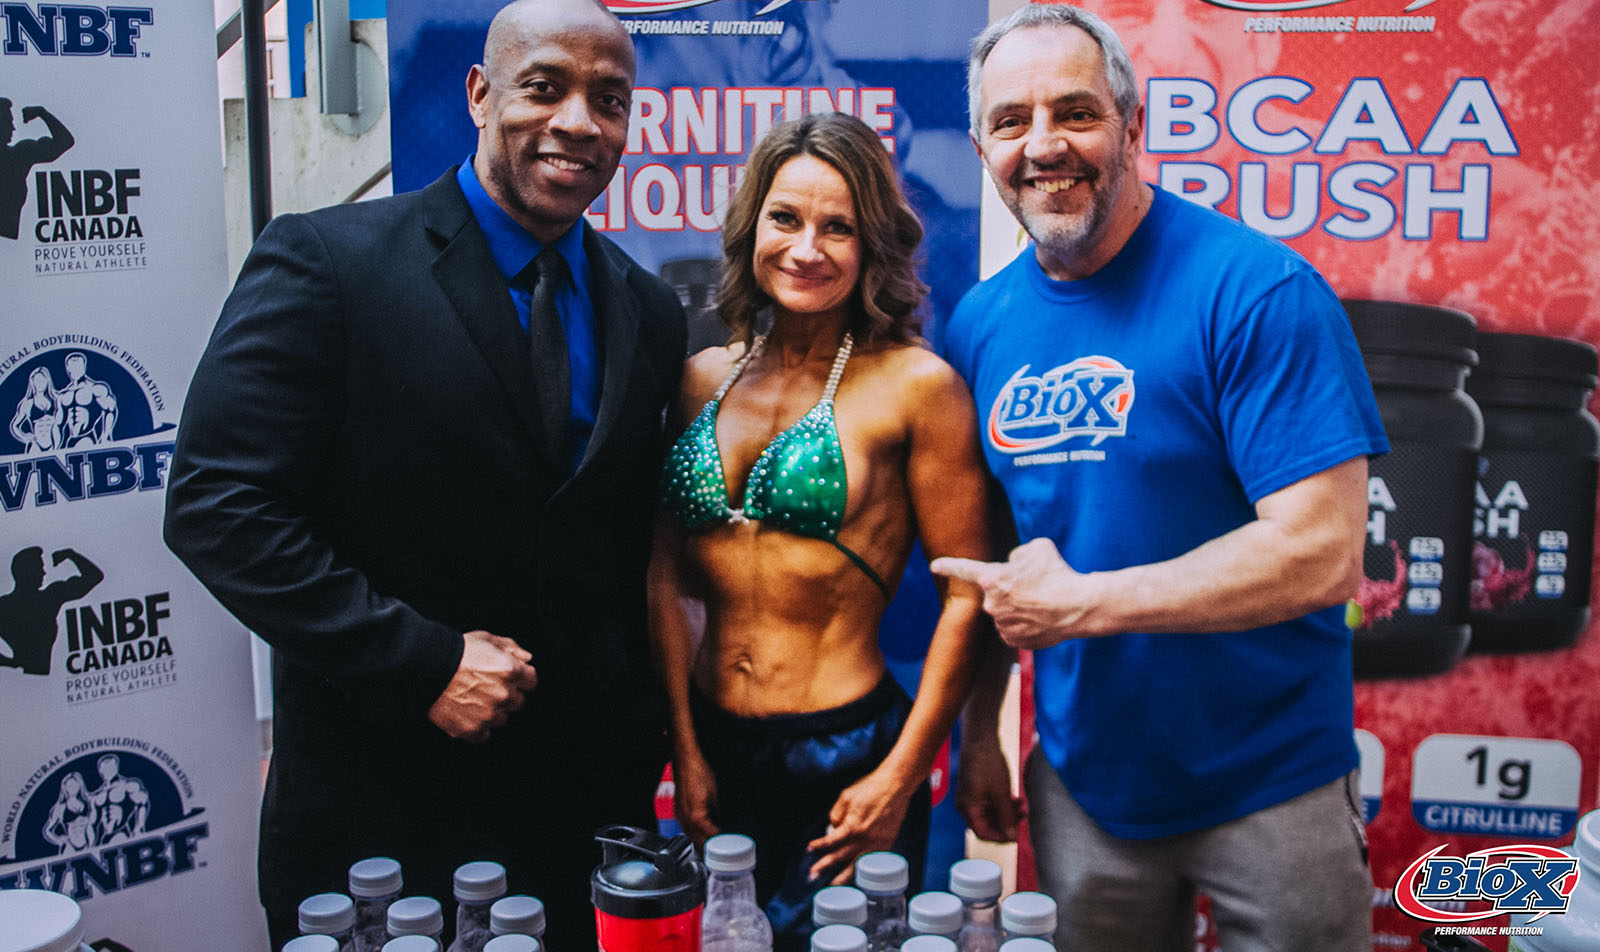 Highlights from the INBF Vancouver Naturals